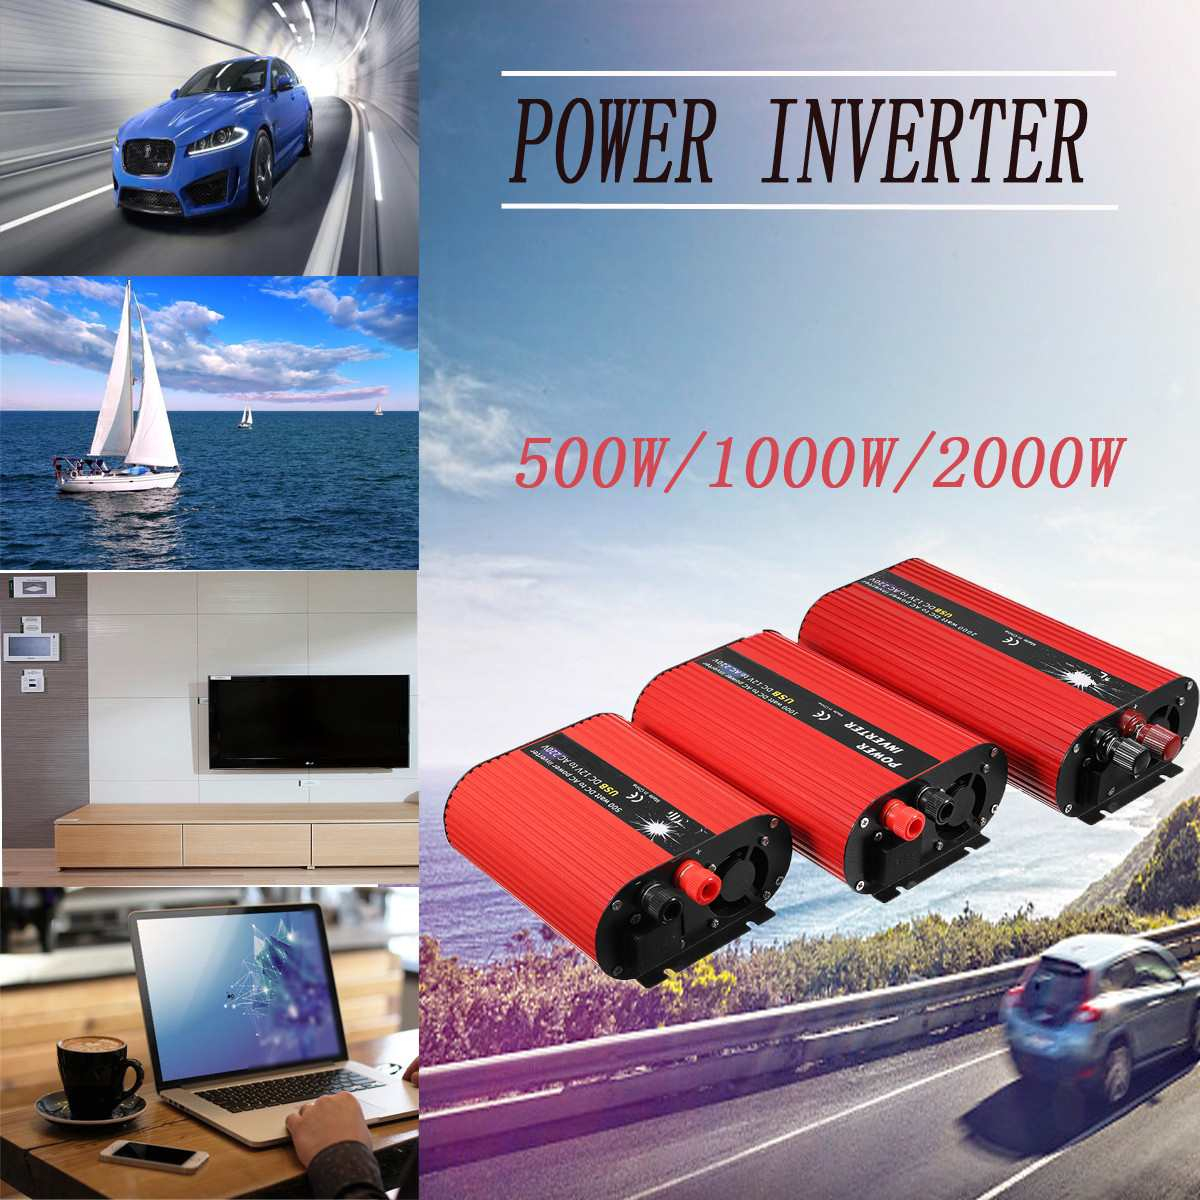 500W 1000W 2000W Car Power Inverters Voltage Transformer 12V 220V Charger Cigarette Lighter Plug Power Converter Solar Ada car inverter 12v 220v power inverters voltage transformer converter 12 220 1000w charger on display solar adapter 12v 220v dy104